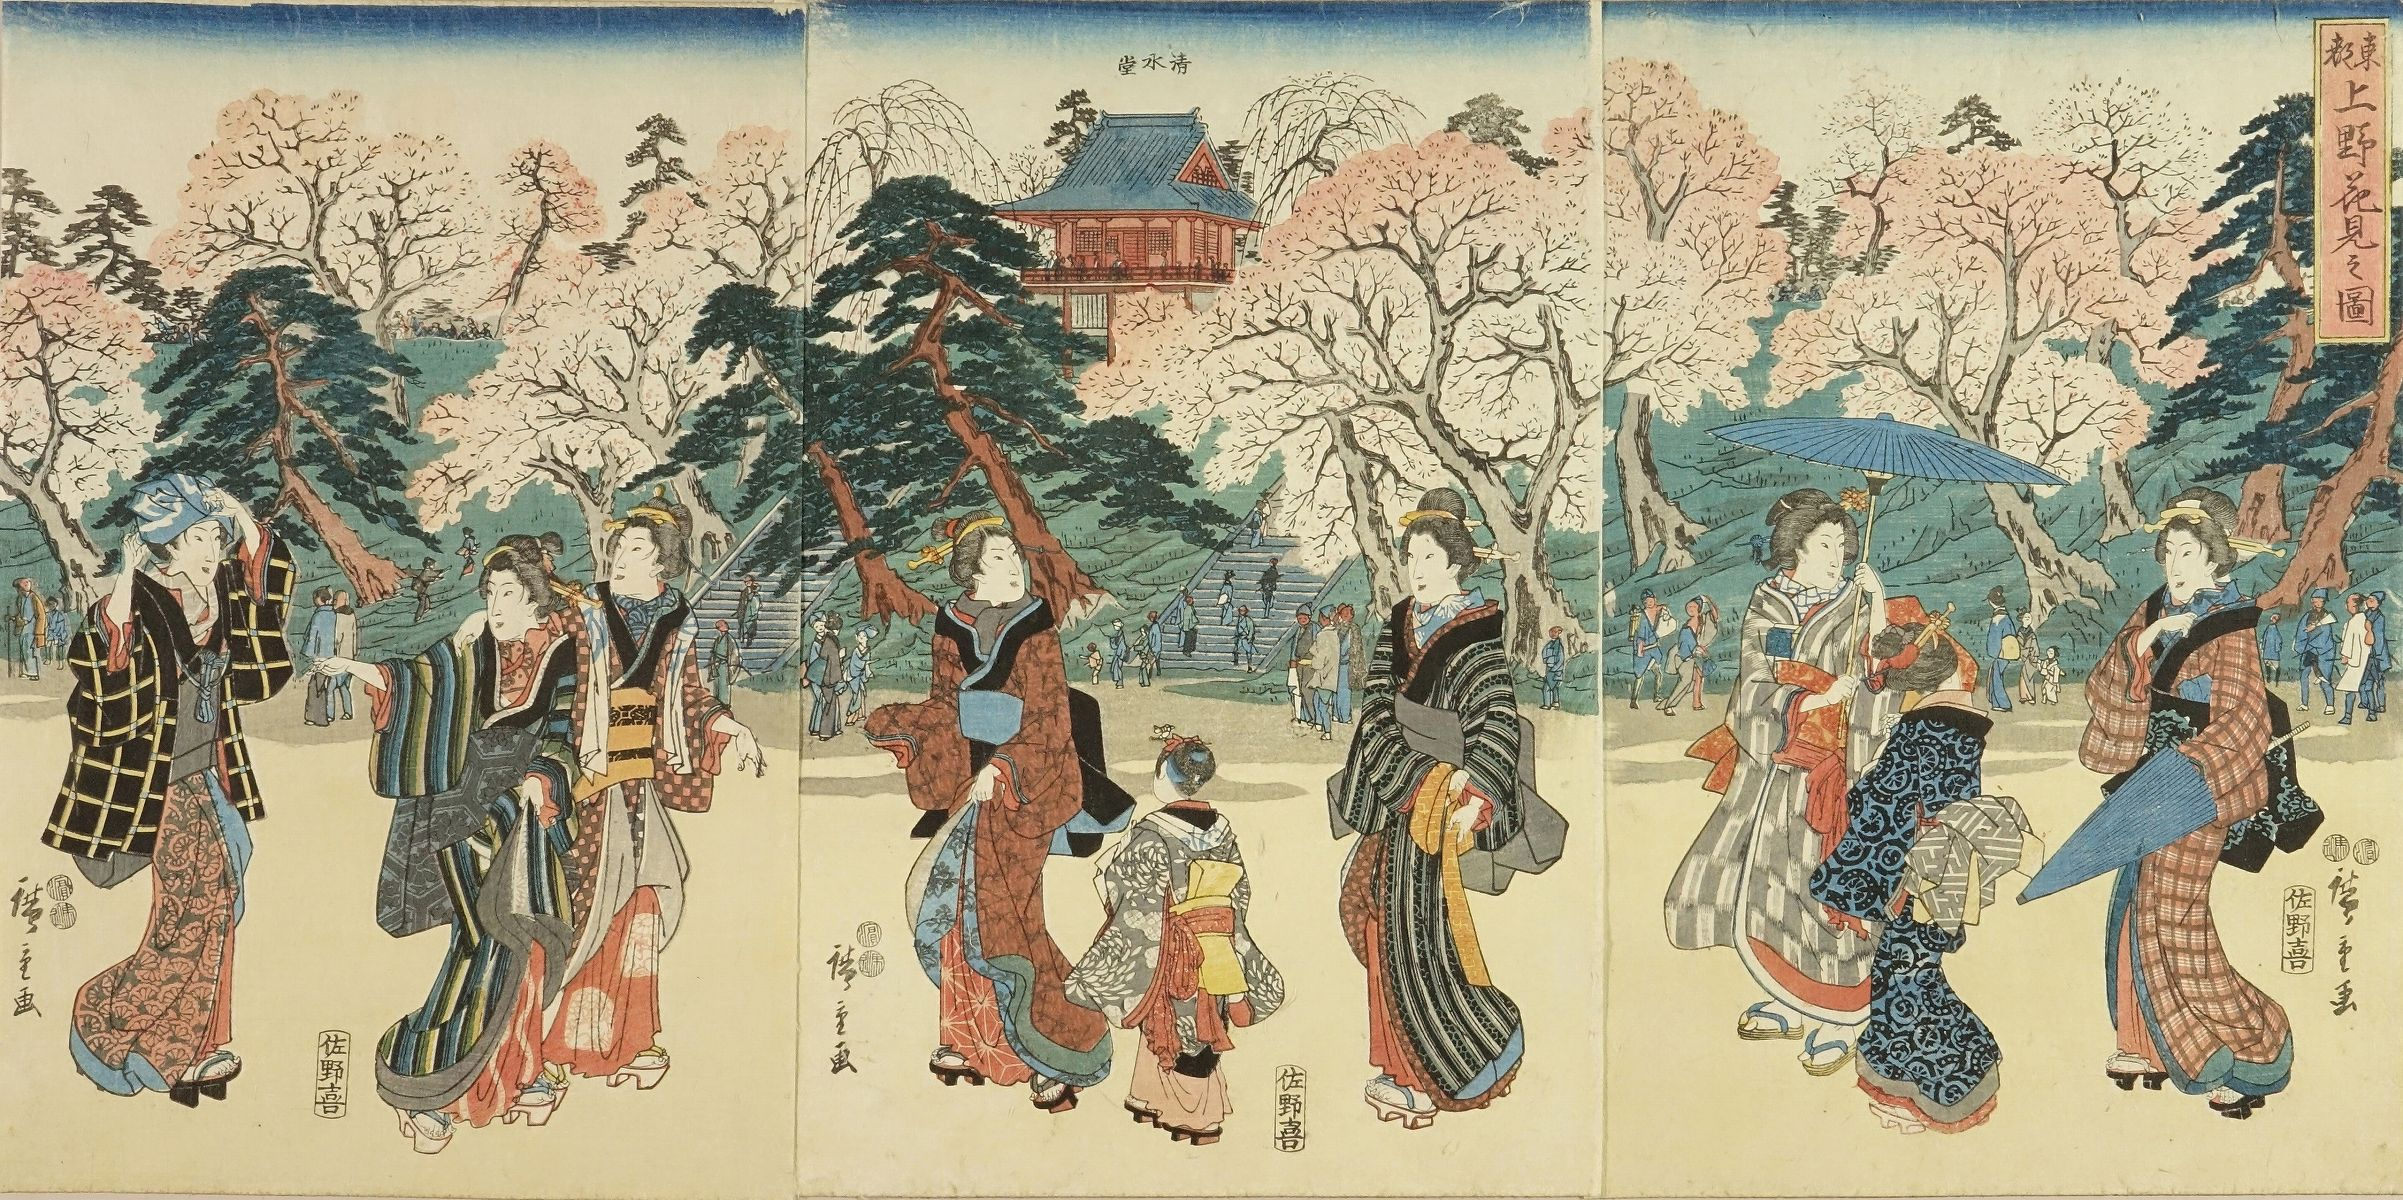 HIROSHIGE Flower viewing at Ueno, the eastern capital, triptych